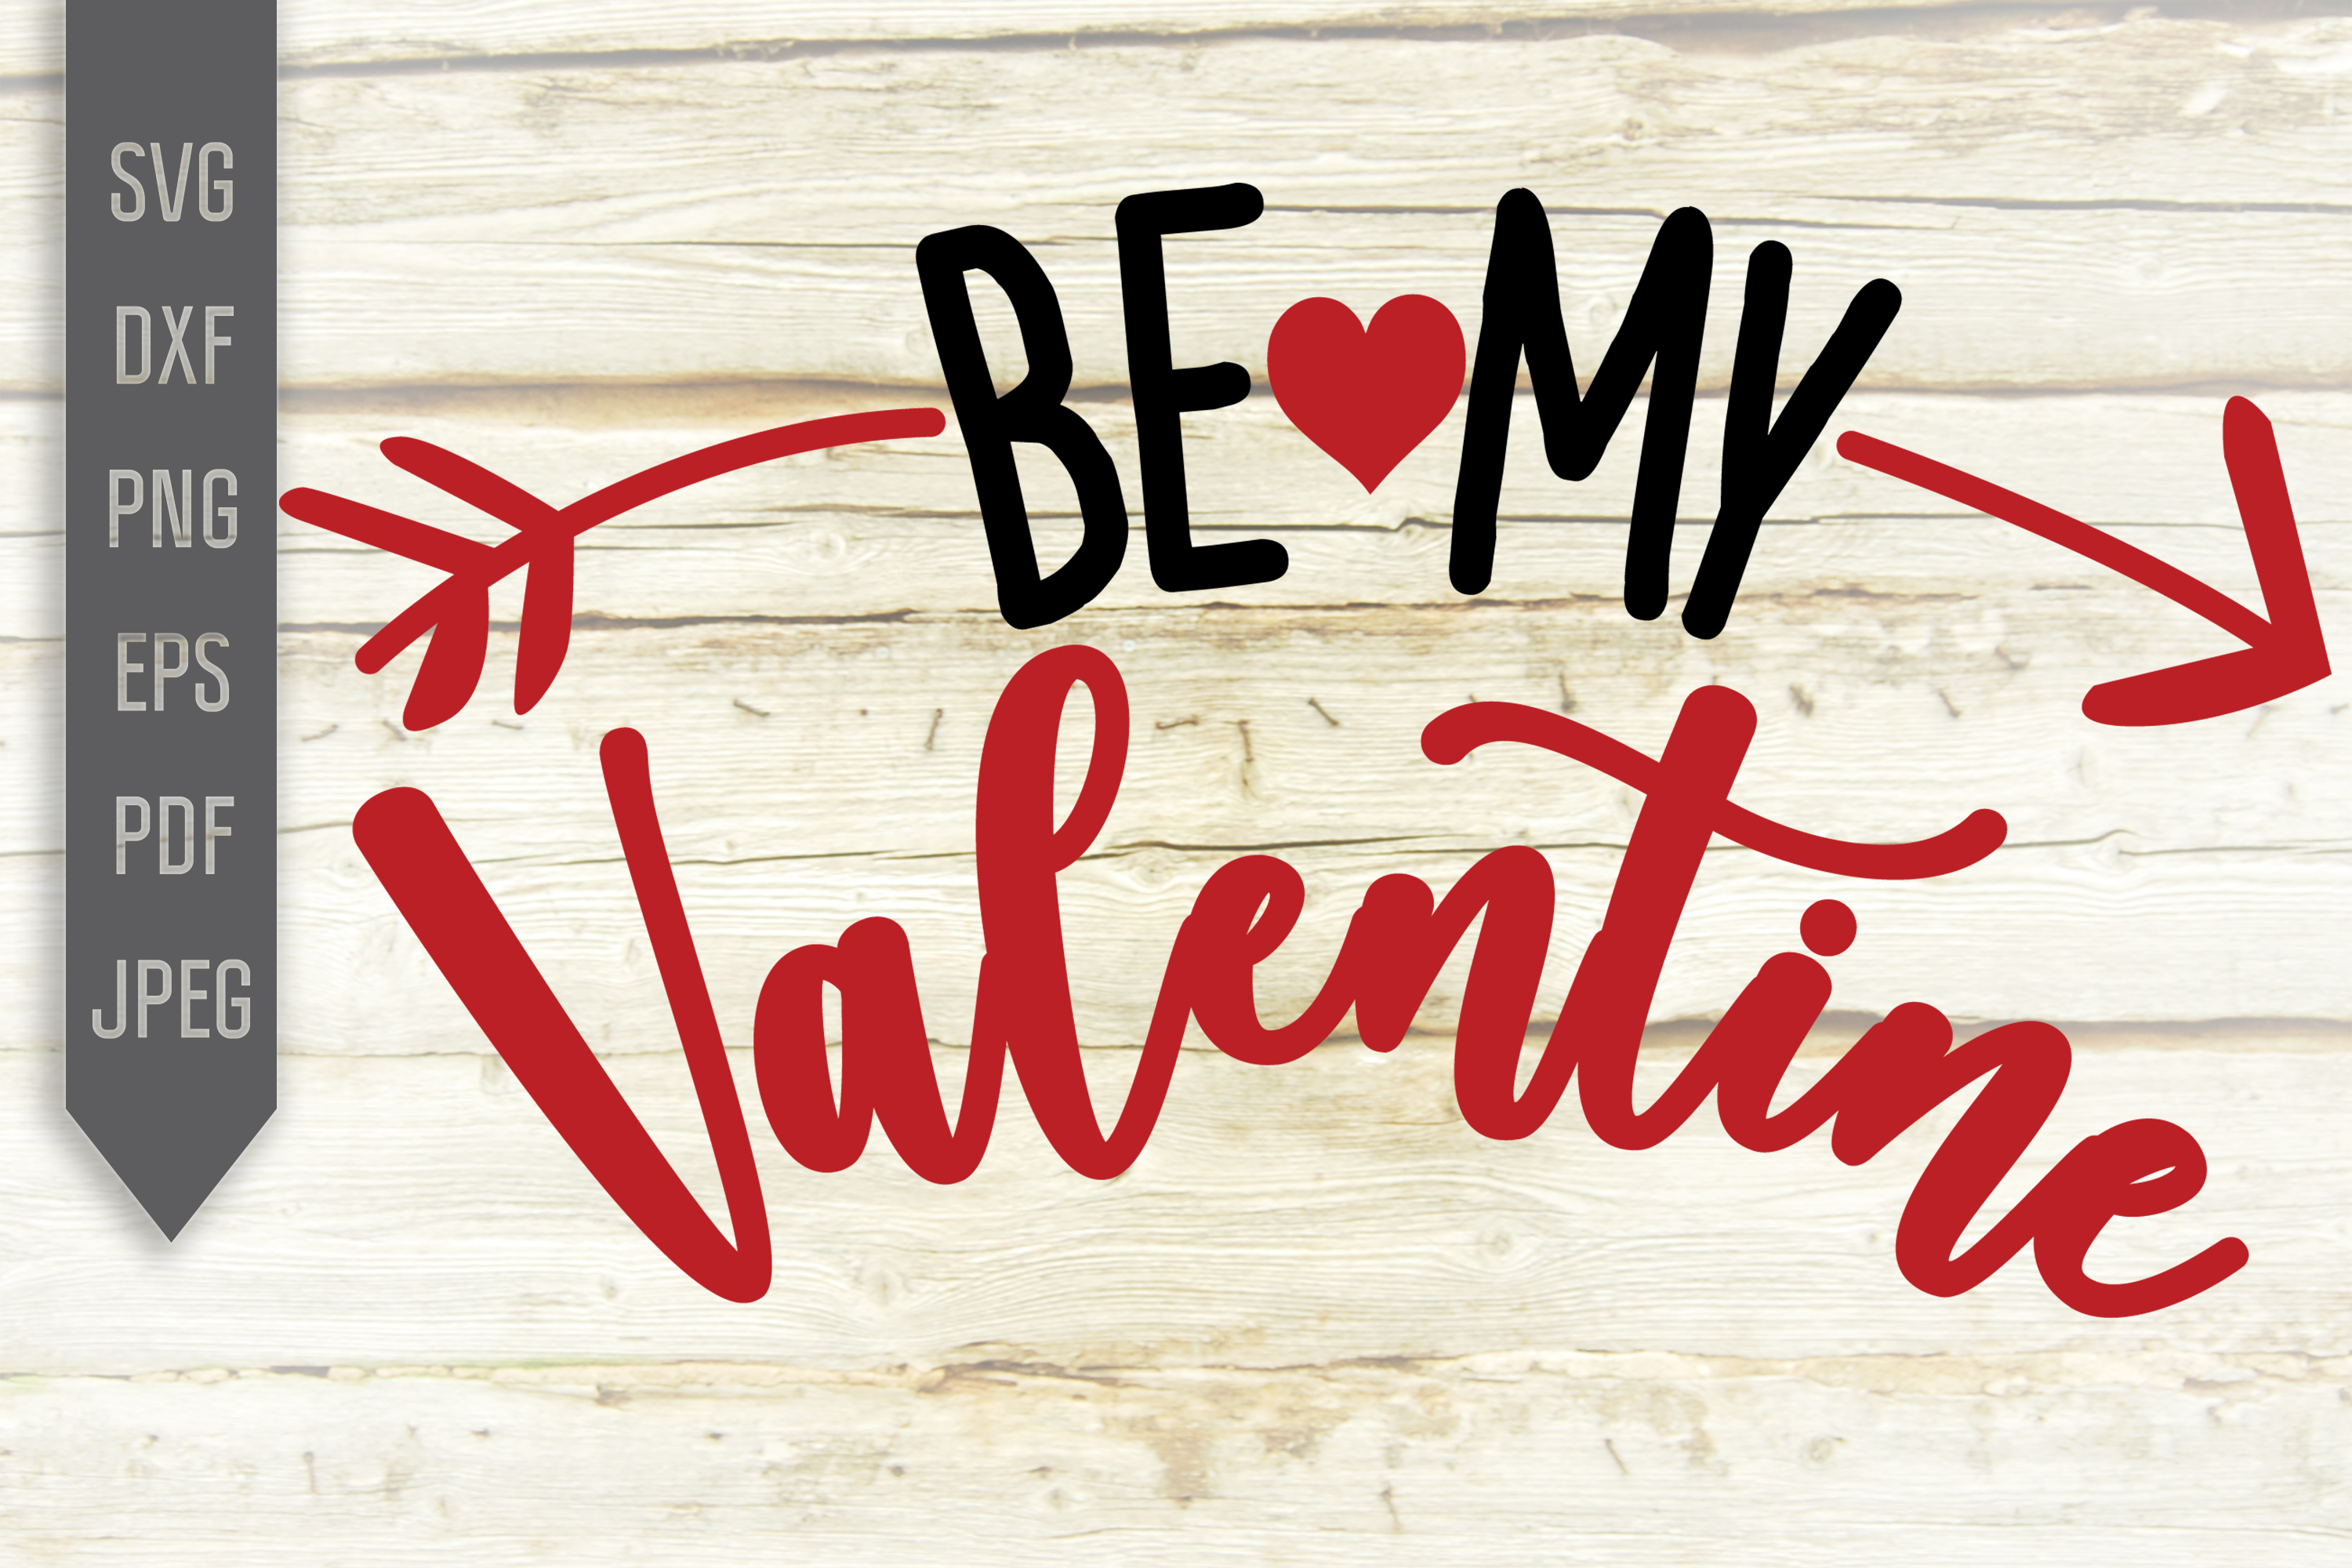 Download Free Be My Valentine Svg Shirt Design Craft Graphic By Svglaboratory for Cricut Explore, Silhouette and other cutting machines.